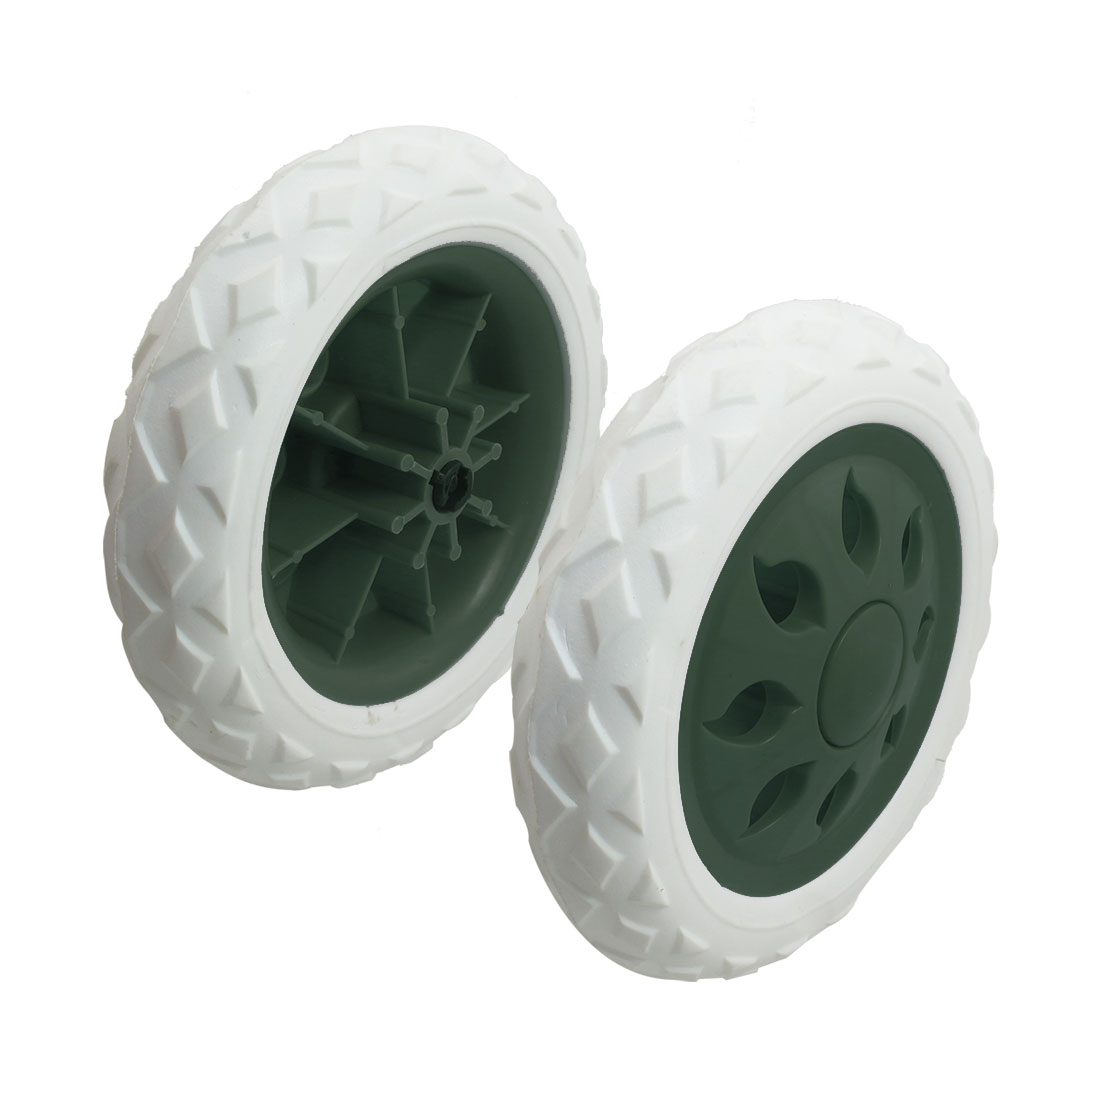 2 Pieces Dark Green White Hot Wheel Design Shopping Trolley Wheels